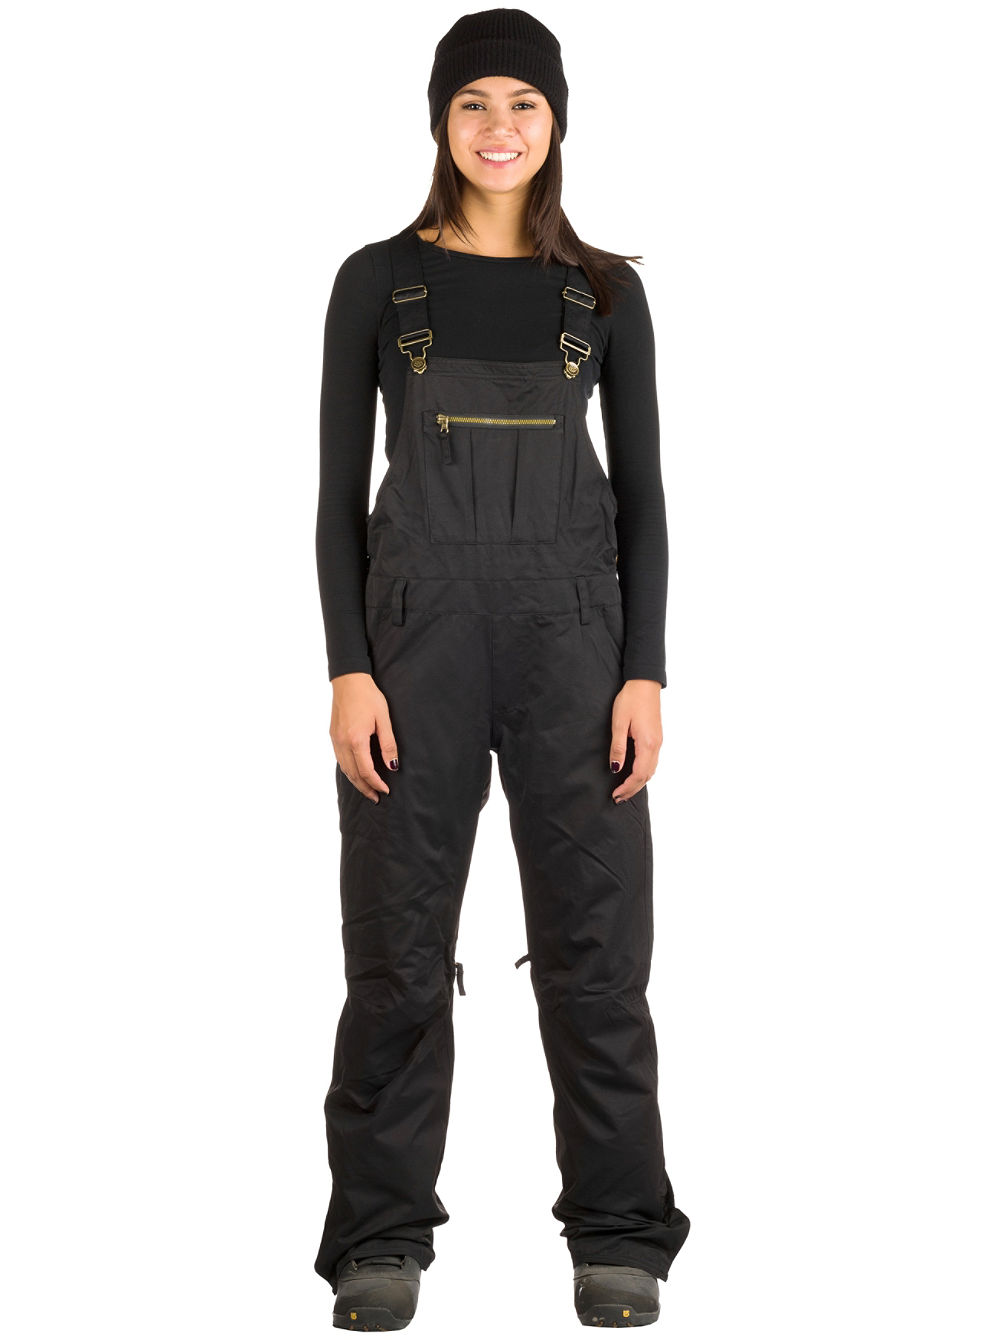 Black Magic Insulated Overall Pants